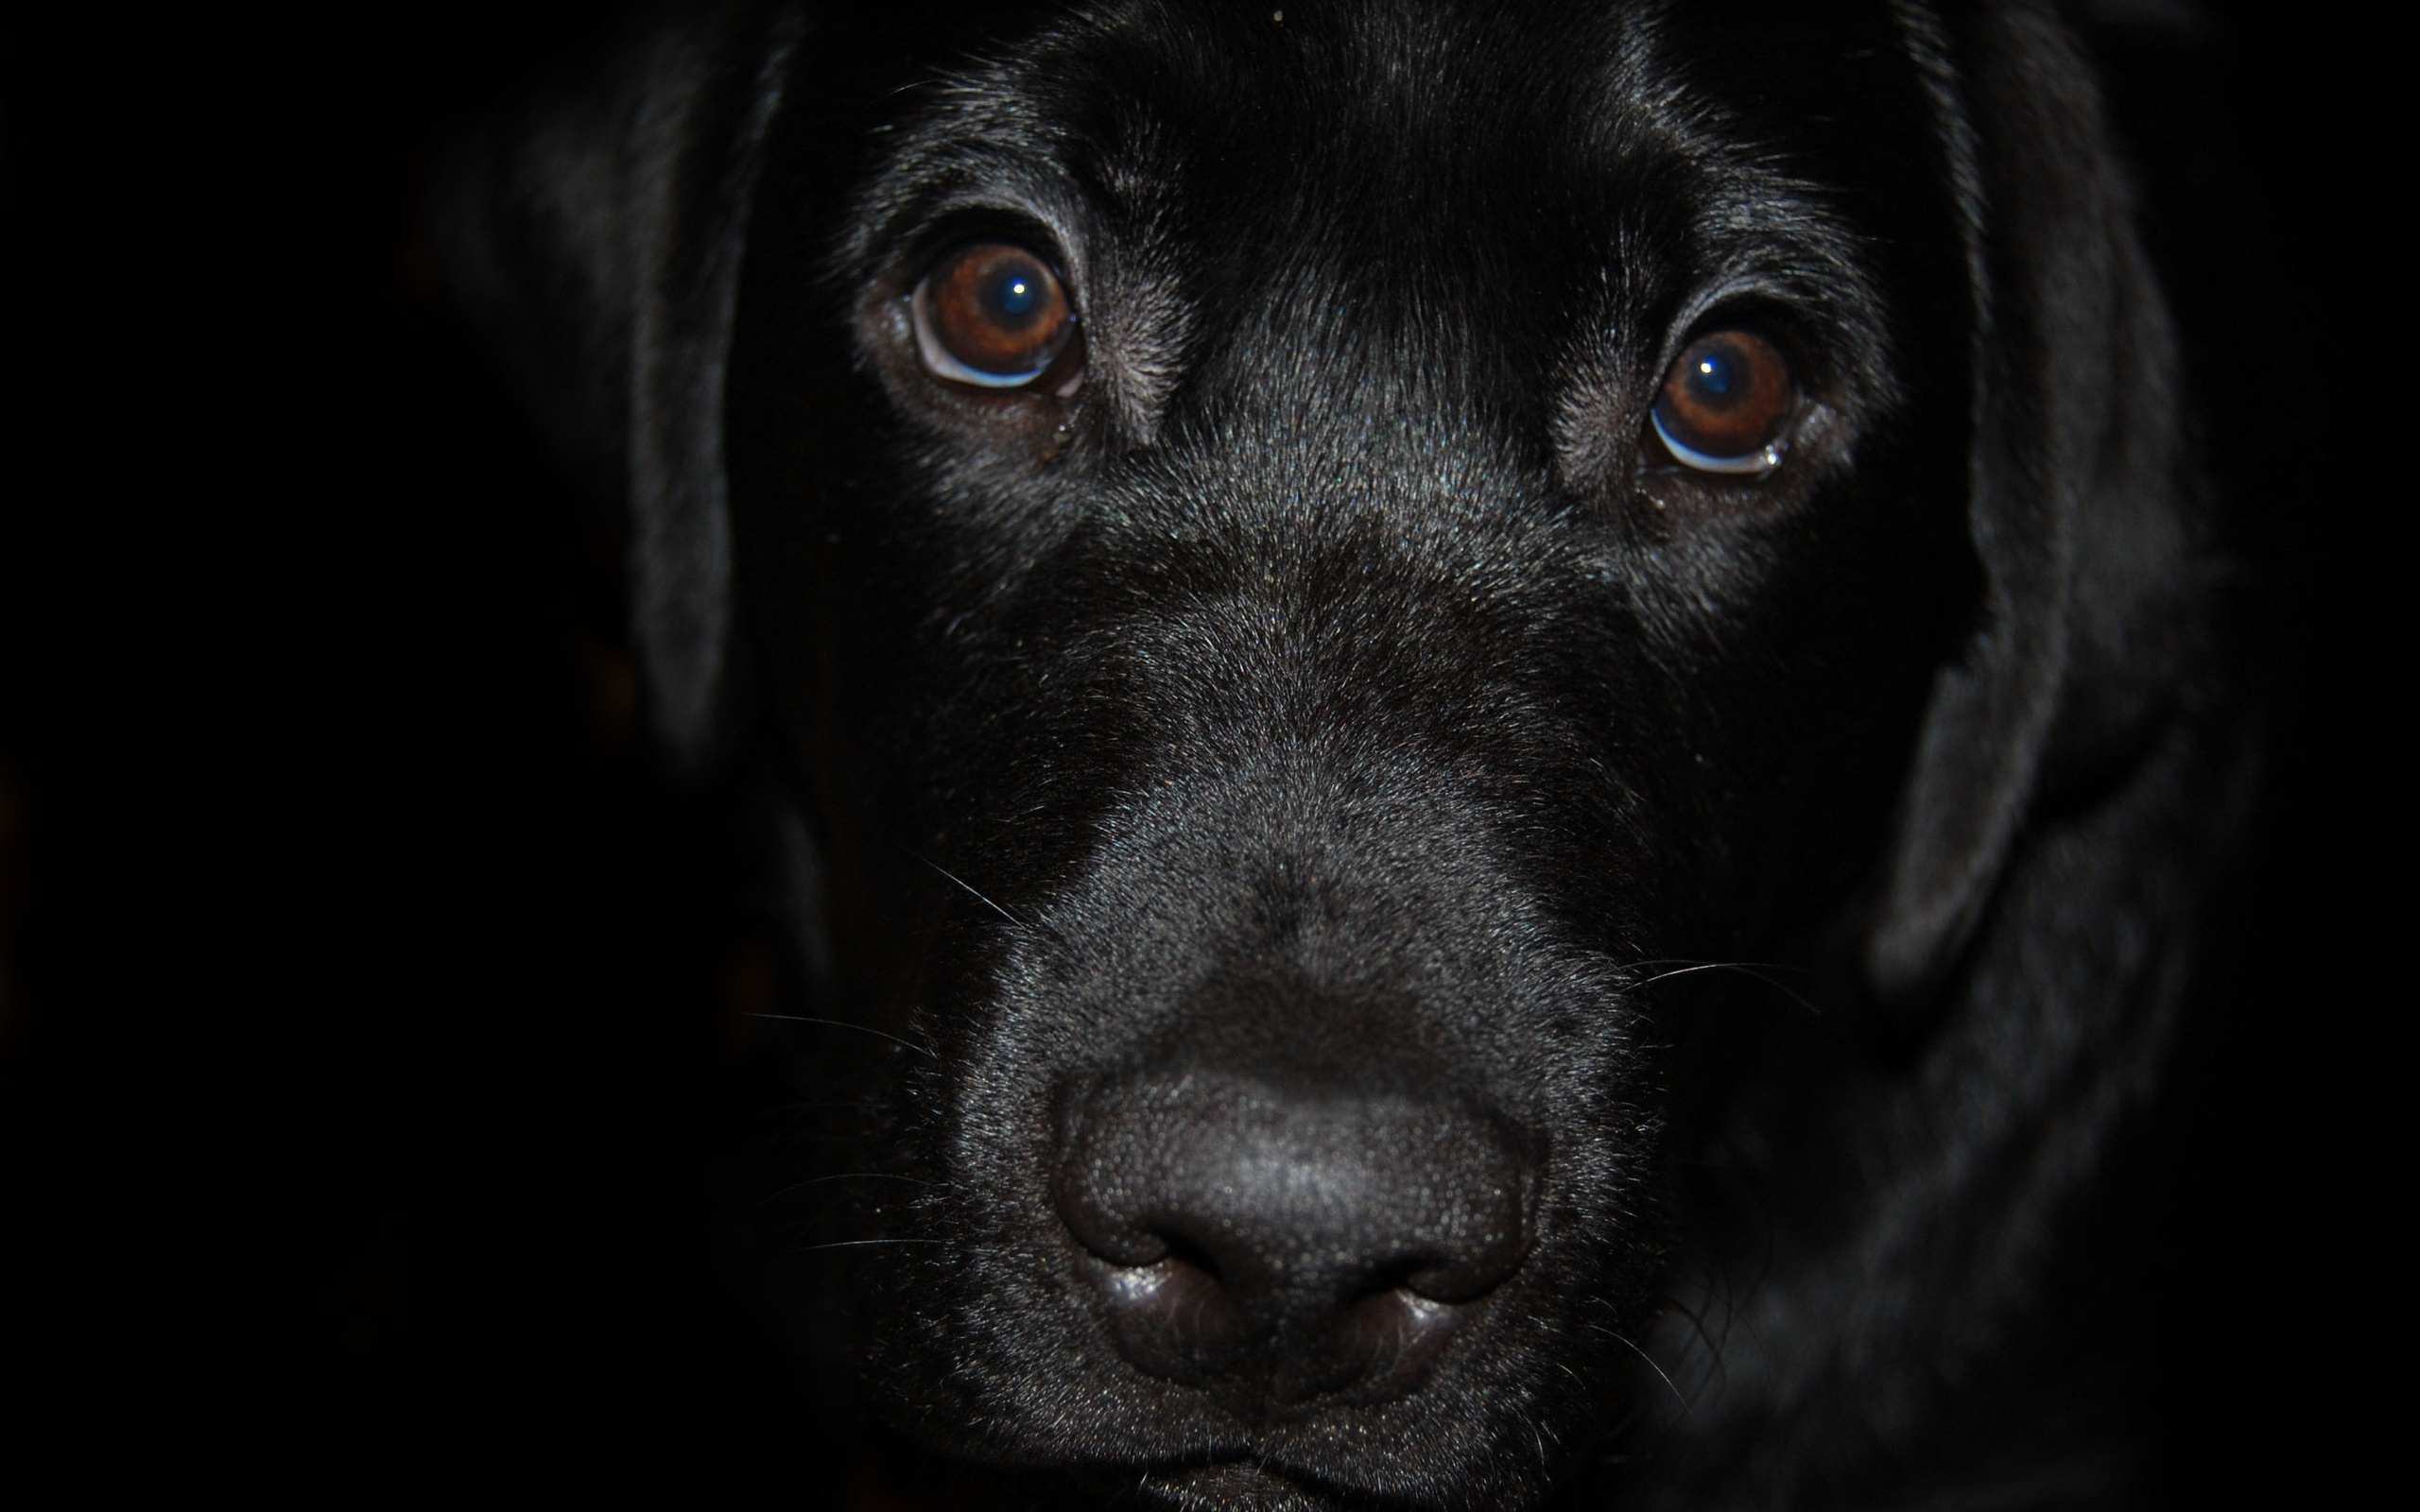 Wallpaper black labrador dog muzzle nose eyes desktop wallpaper 2560x1600